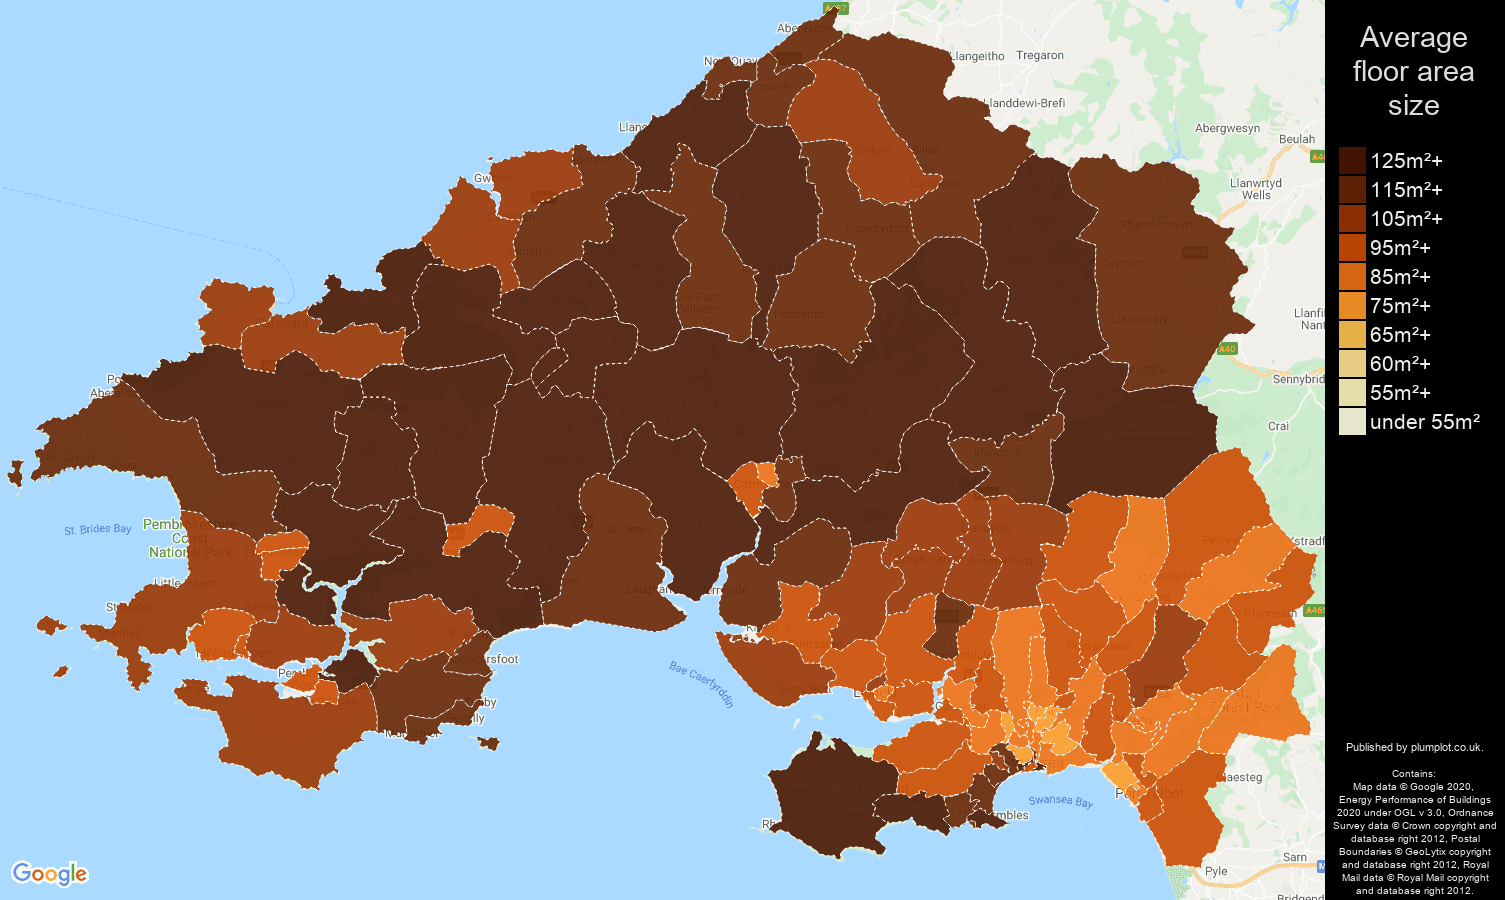 Swansea map of average floor area size of houses